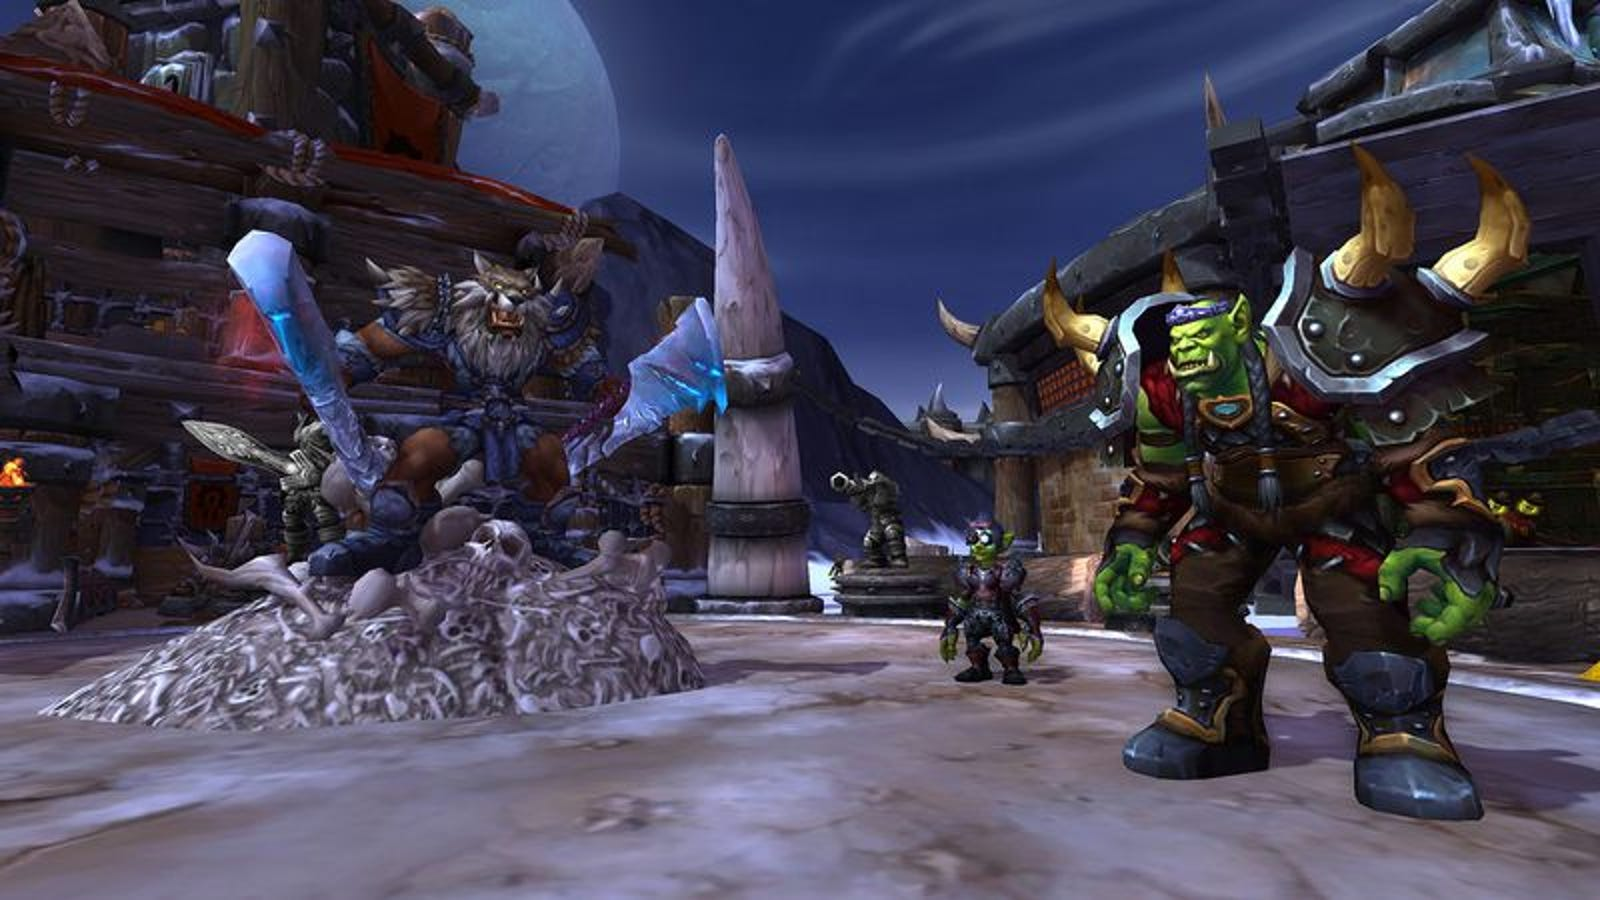 The new World Of Warcraft expansion goes back in time but